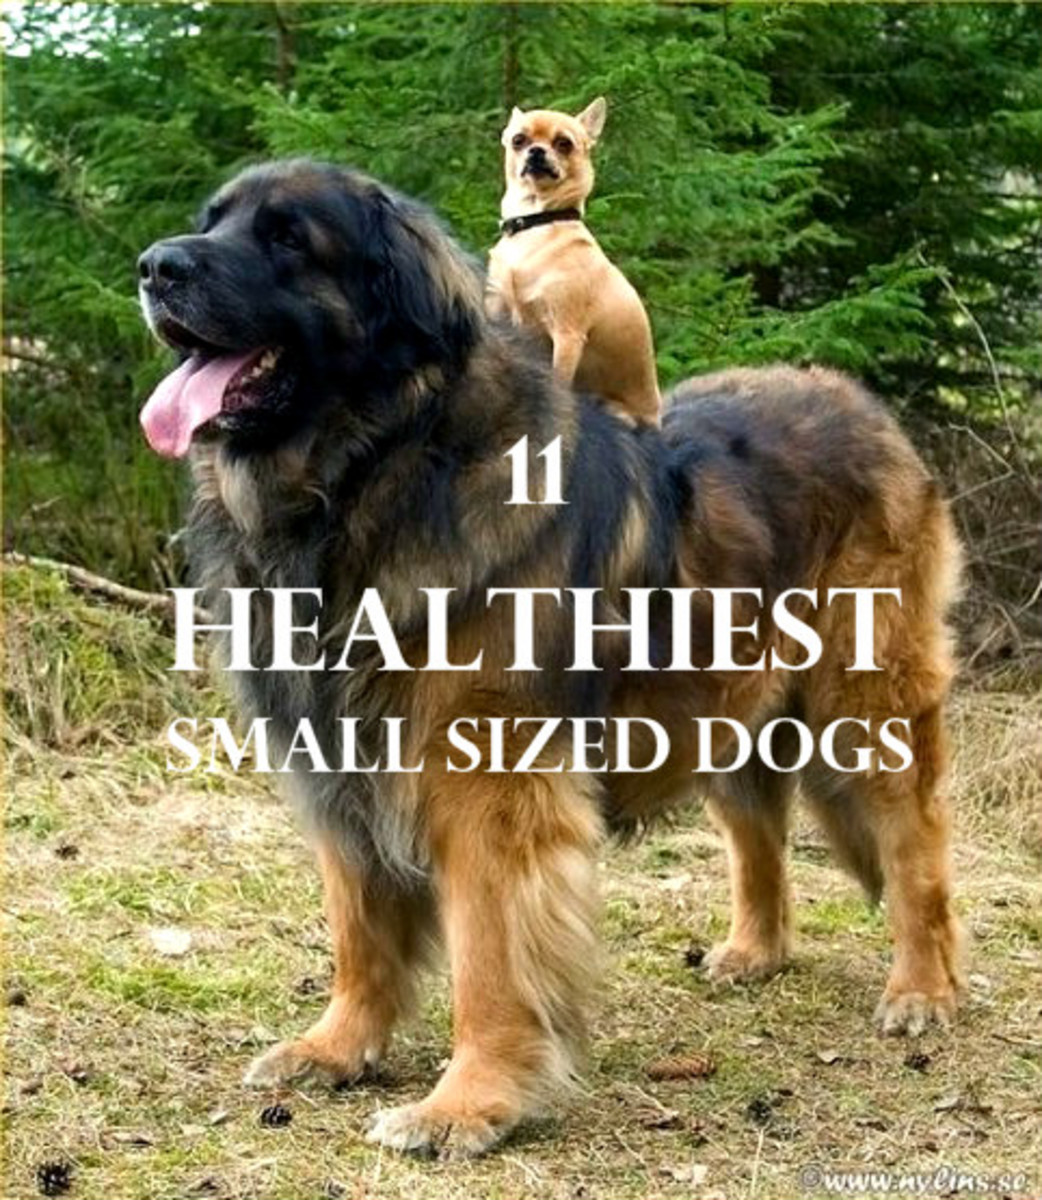 11 Healthiest Small Breed Dogs